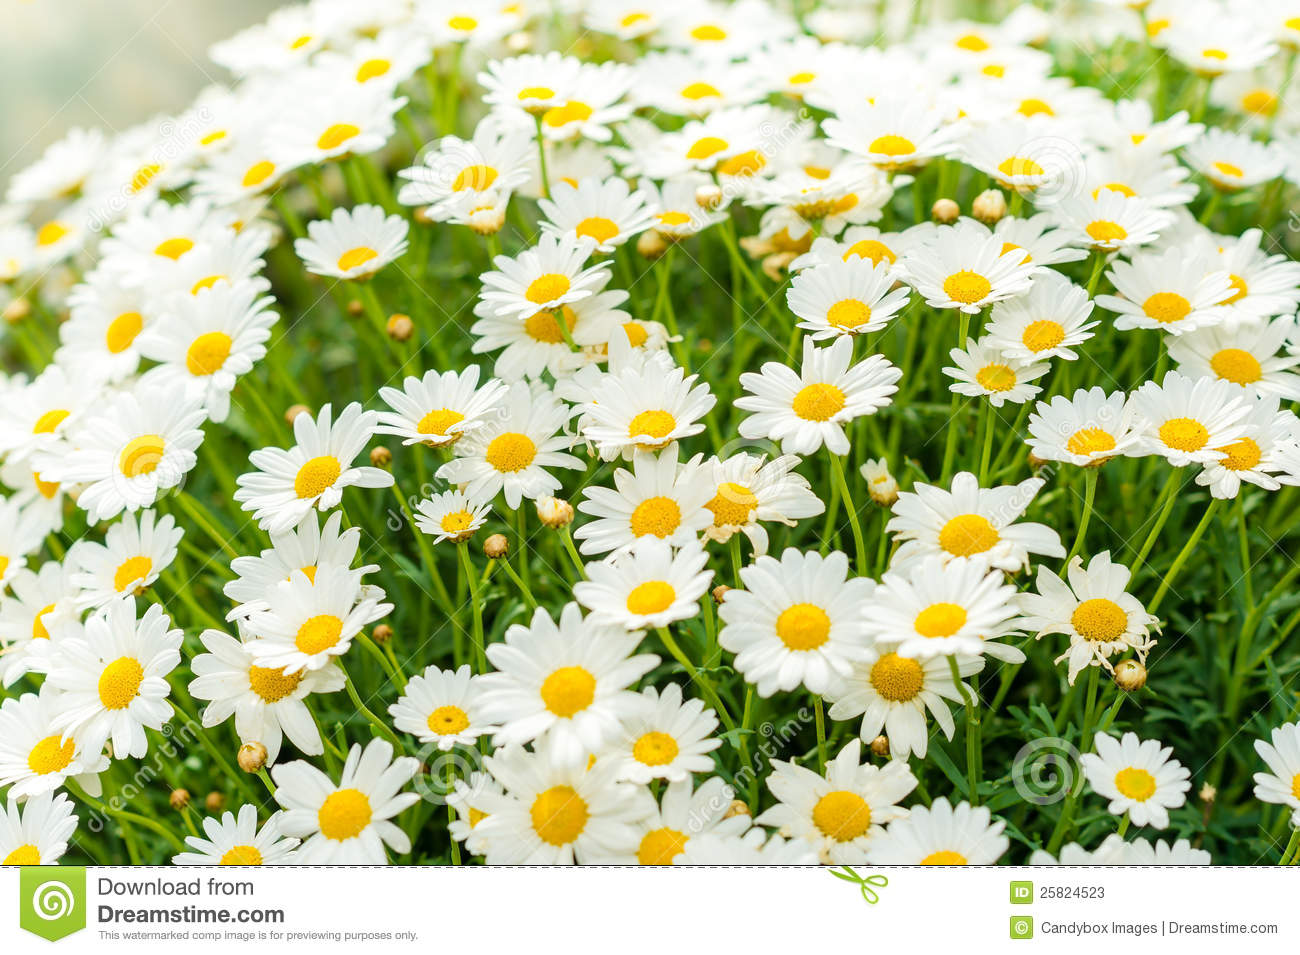 Daisy flower garden shop retail store stock image image of retail daisy flower garden shop retail store izmirmasajfo